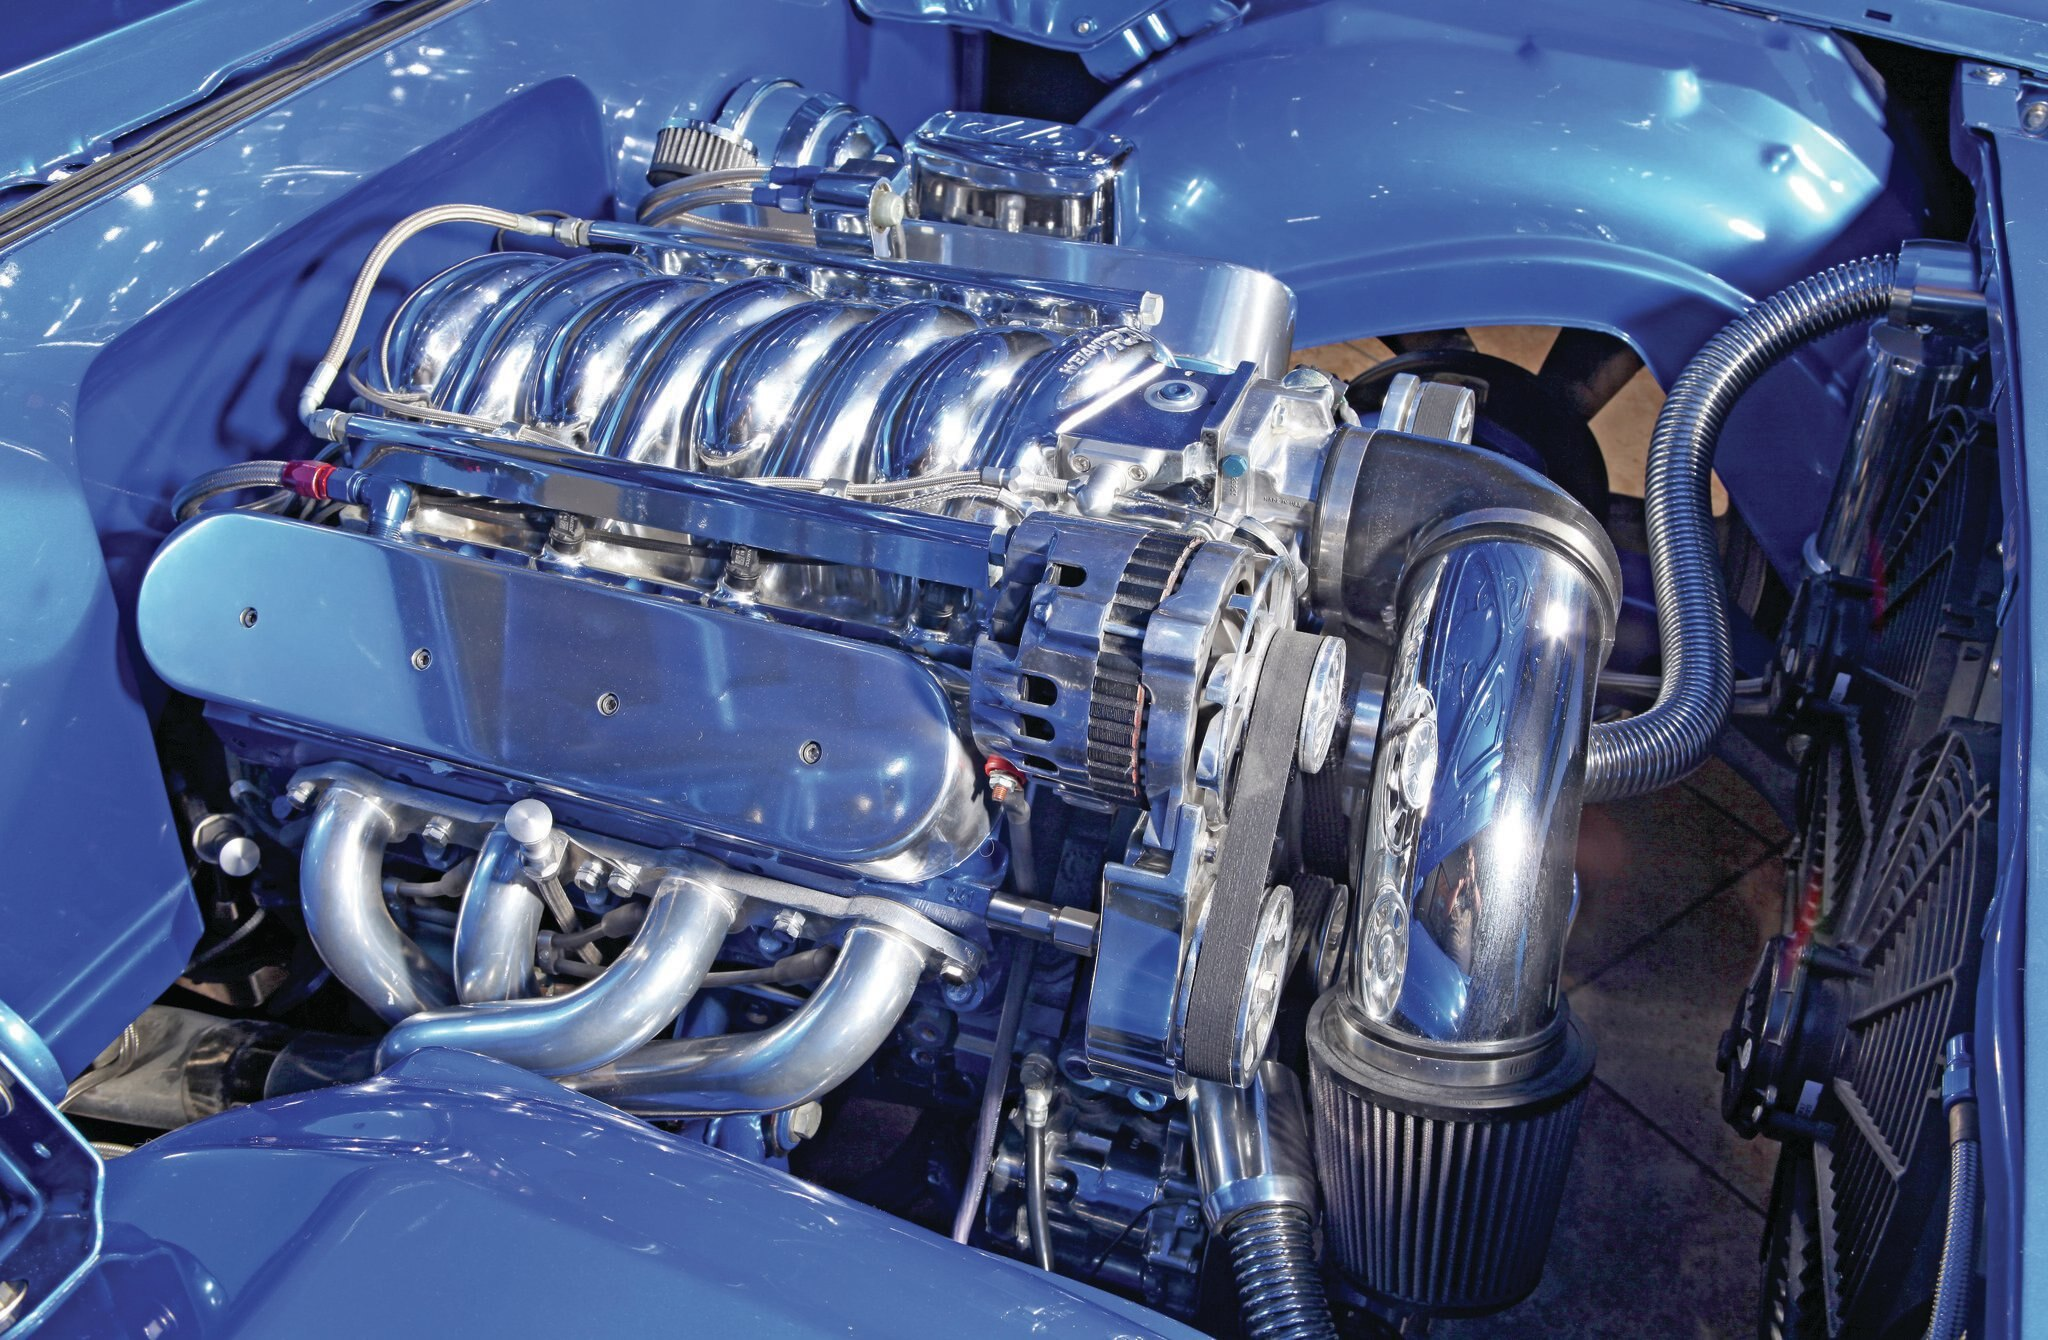 Cadillac Coupe Deville Ls Engine on 1966 Cadillac Engine Swap